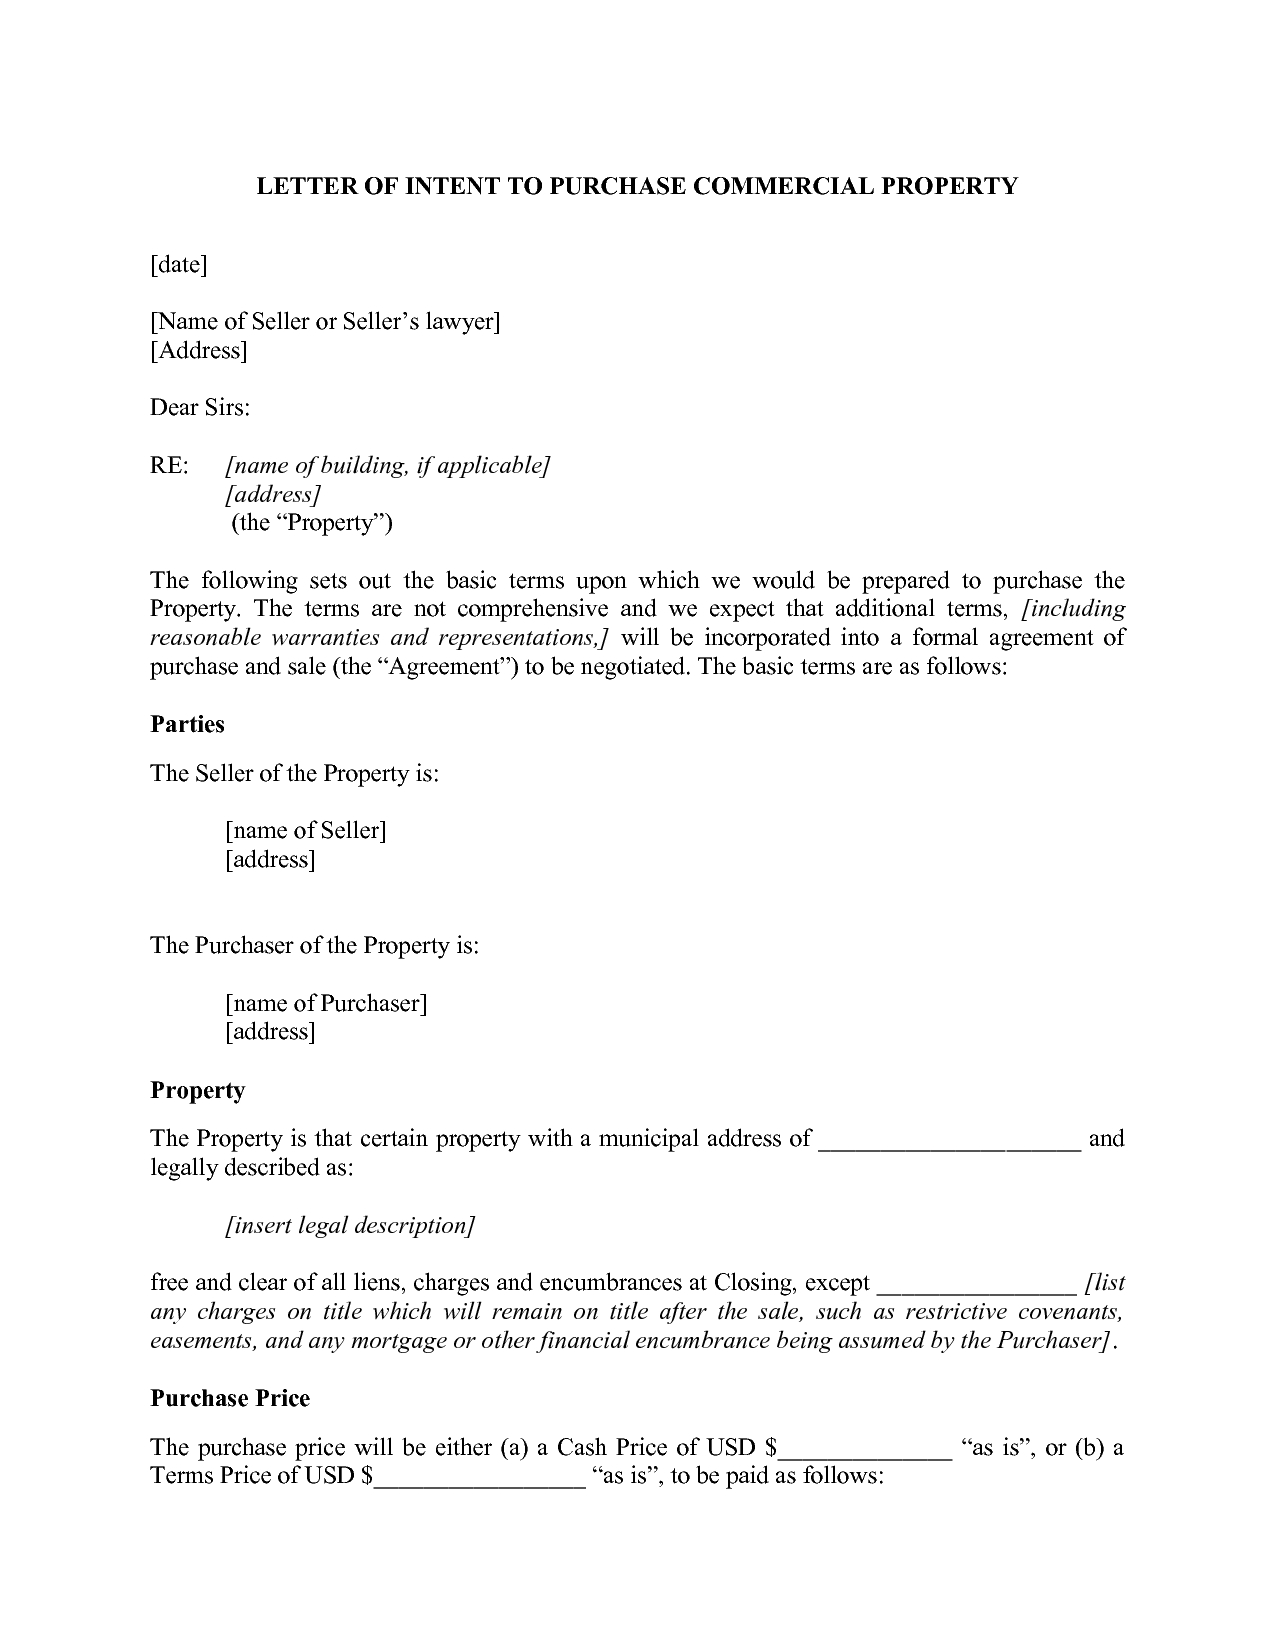 Commercial Real Estate Letter Of Intent to Purchase Template - Letter Intent Real Estate Lease Hd to Mercial Property